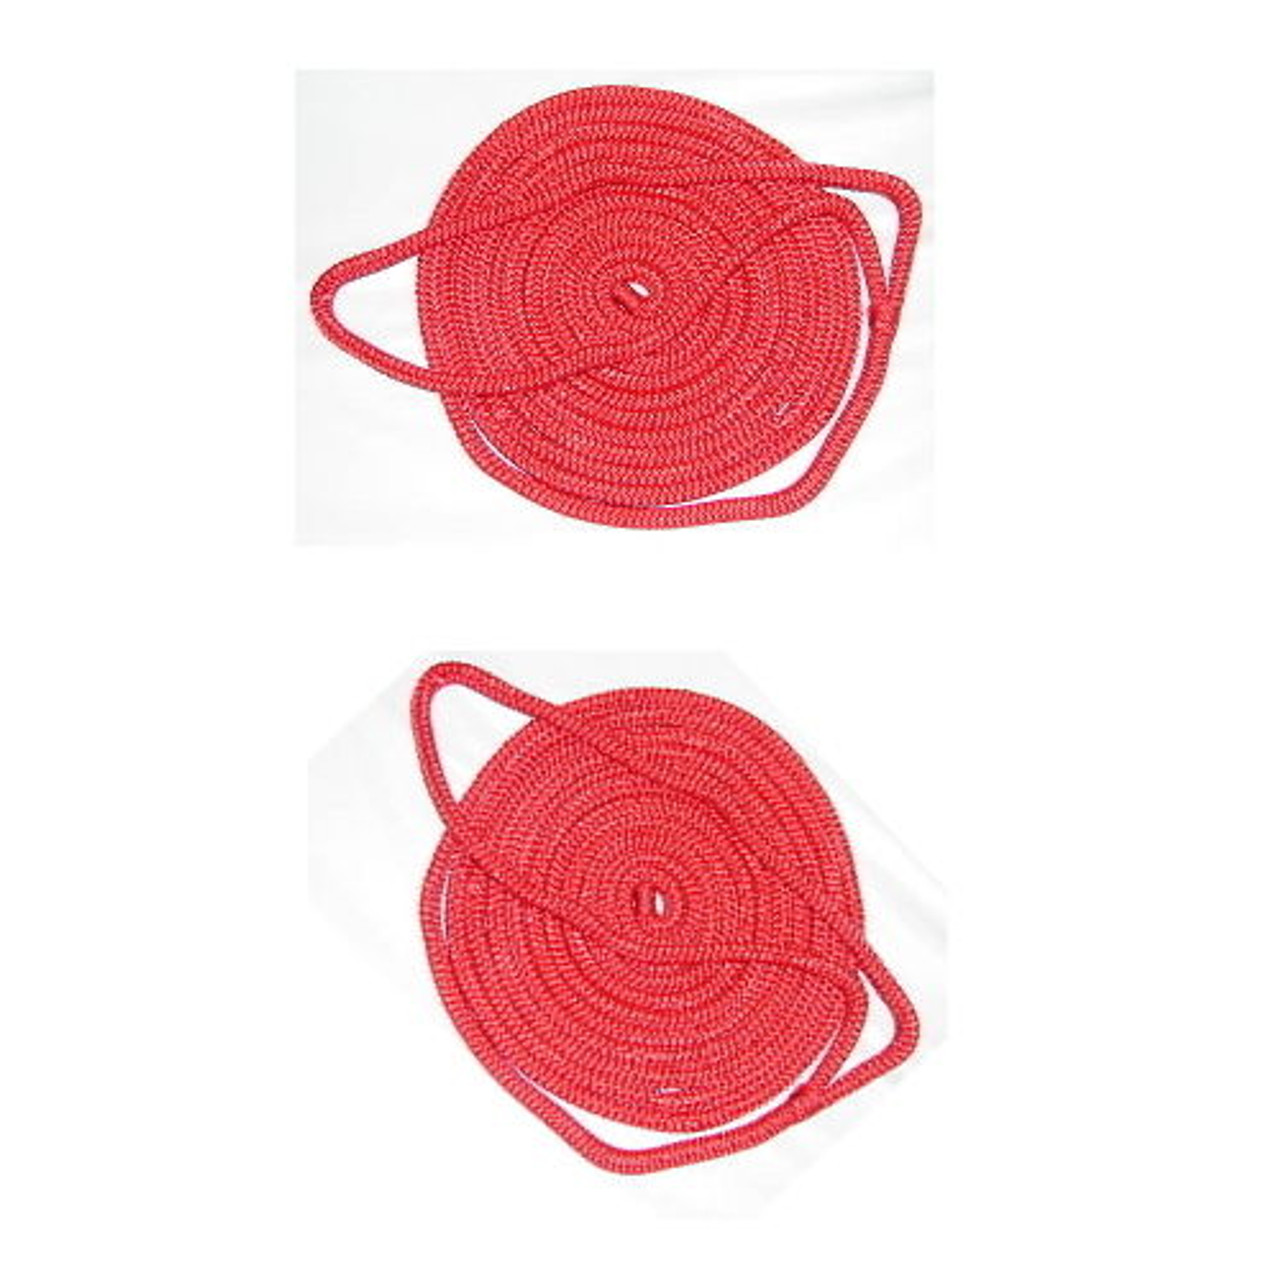 6 Pack of 3//8 Inch x 6 Ft Gold /& White Double Braid Nylon Fender Lines for Boats